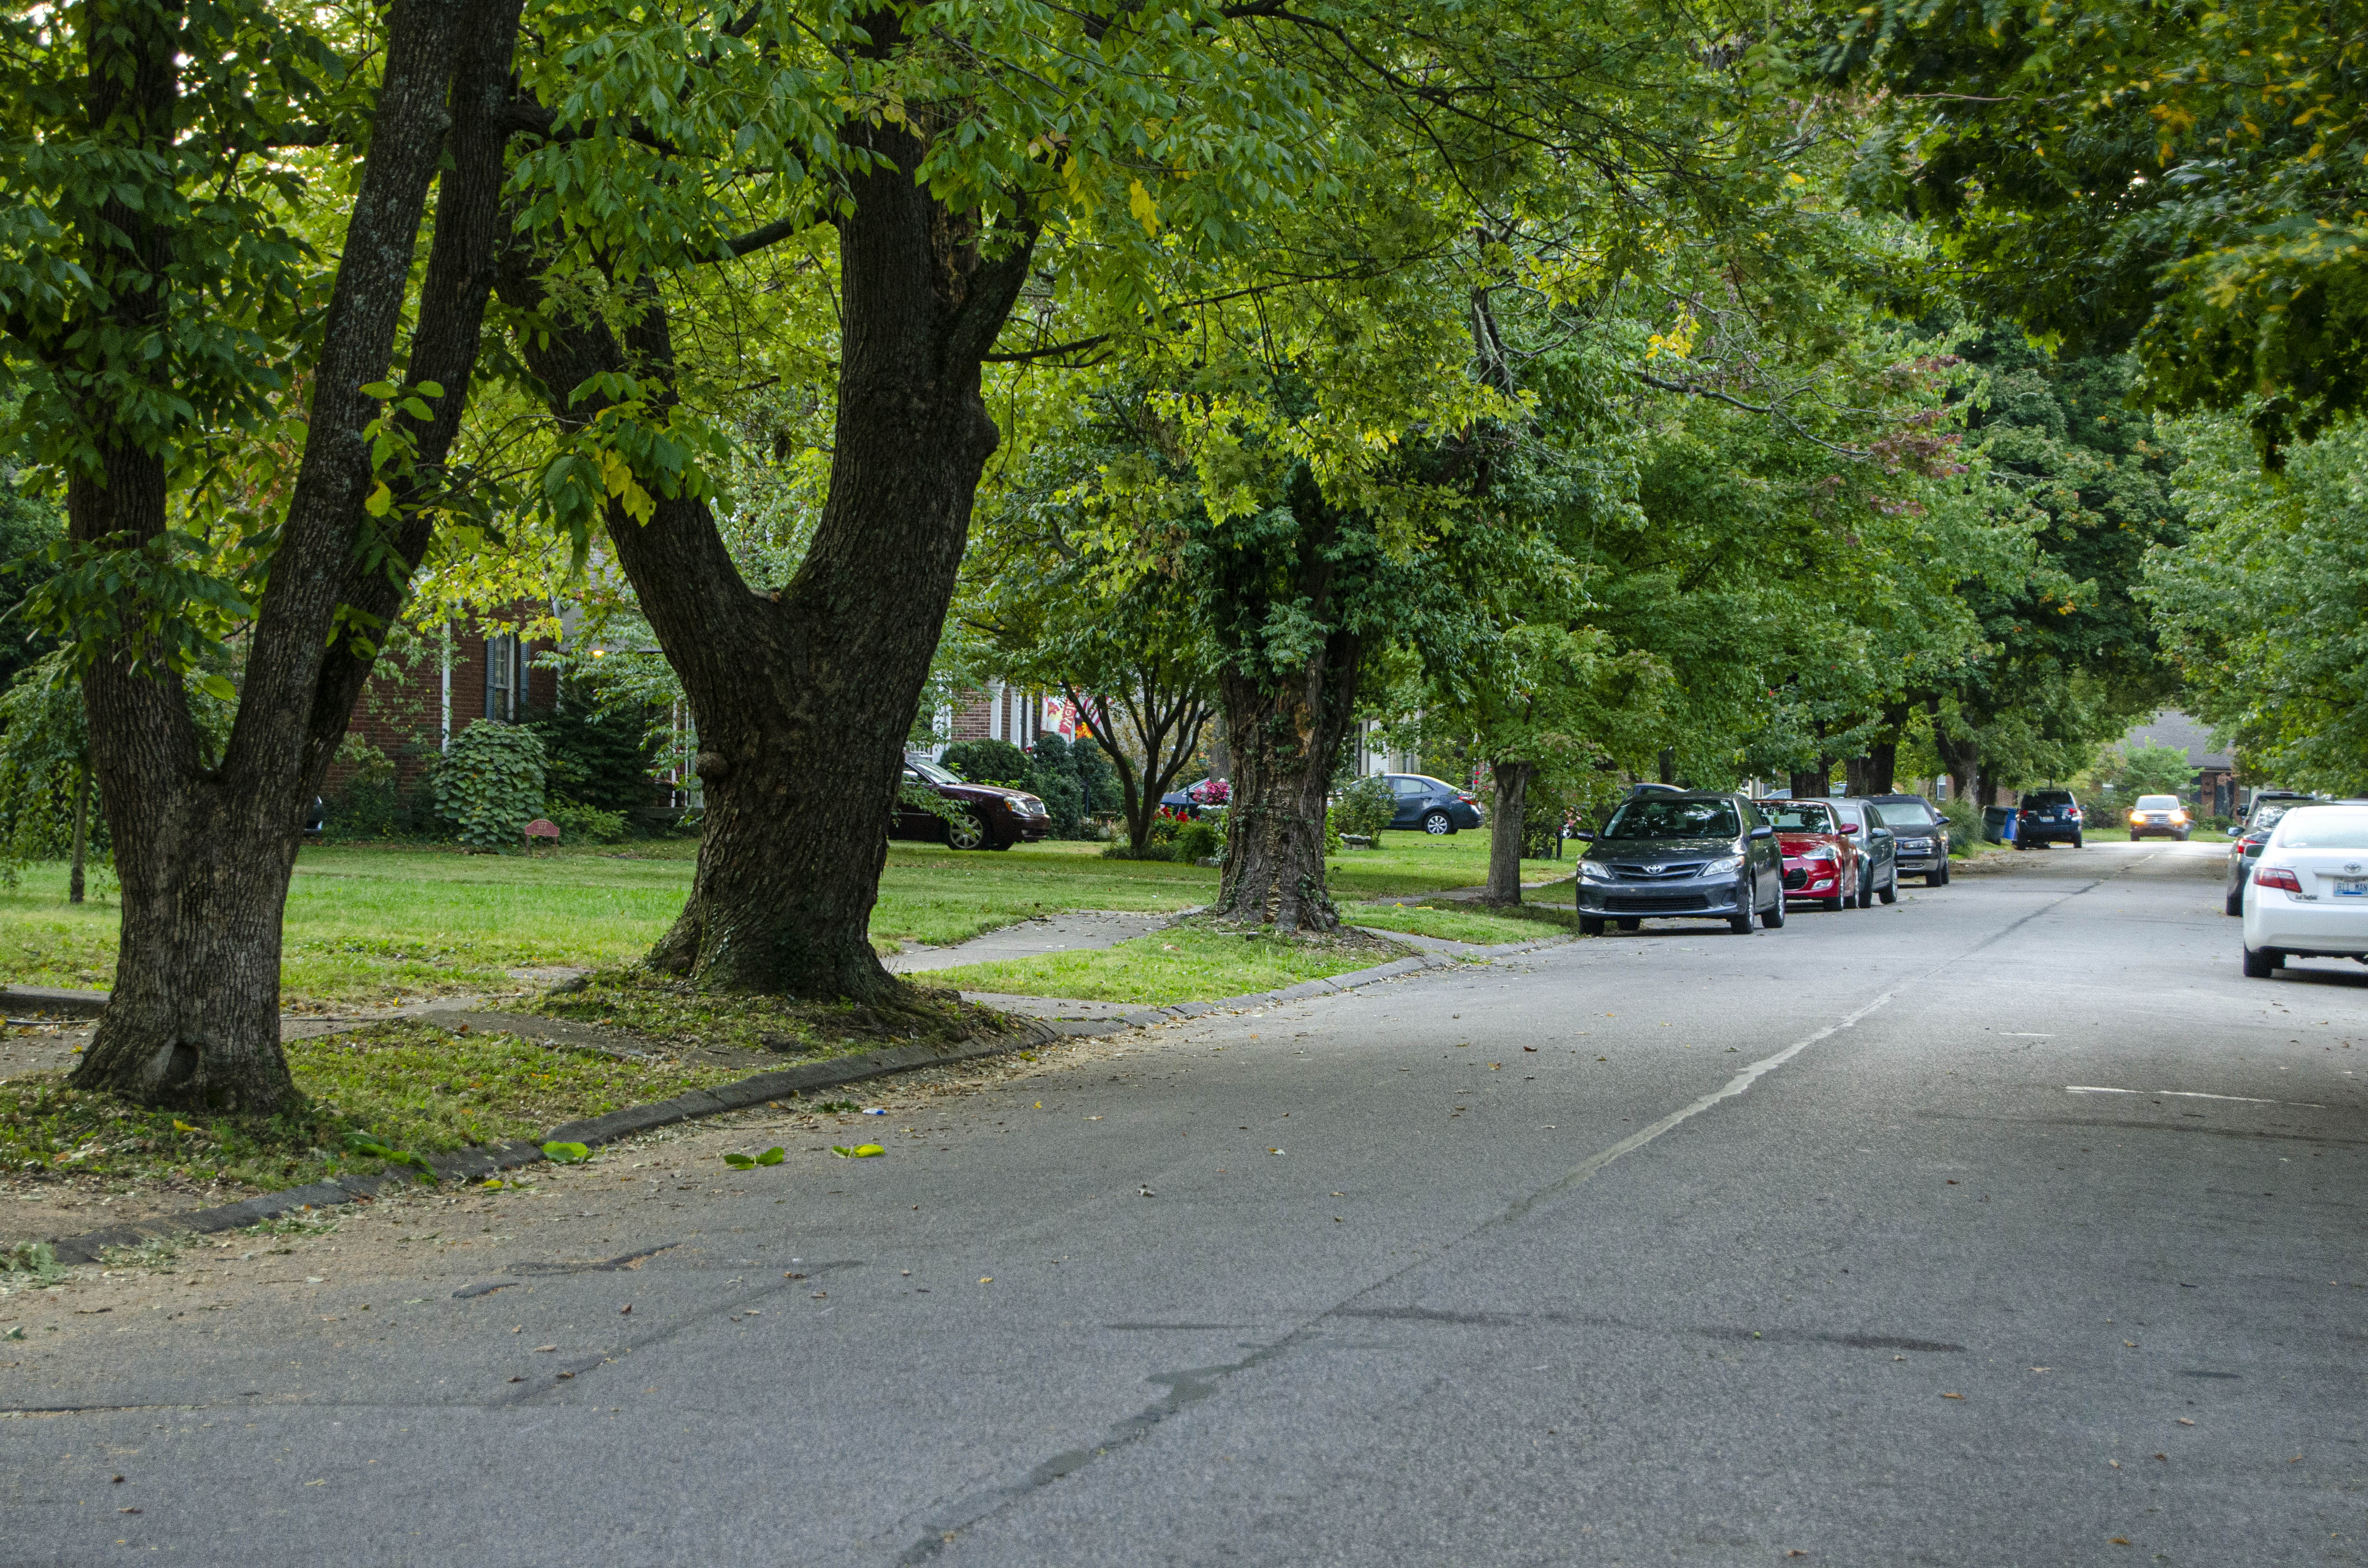 Tree Week 2020 highlights the benefits of urban trees